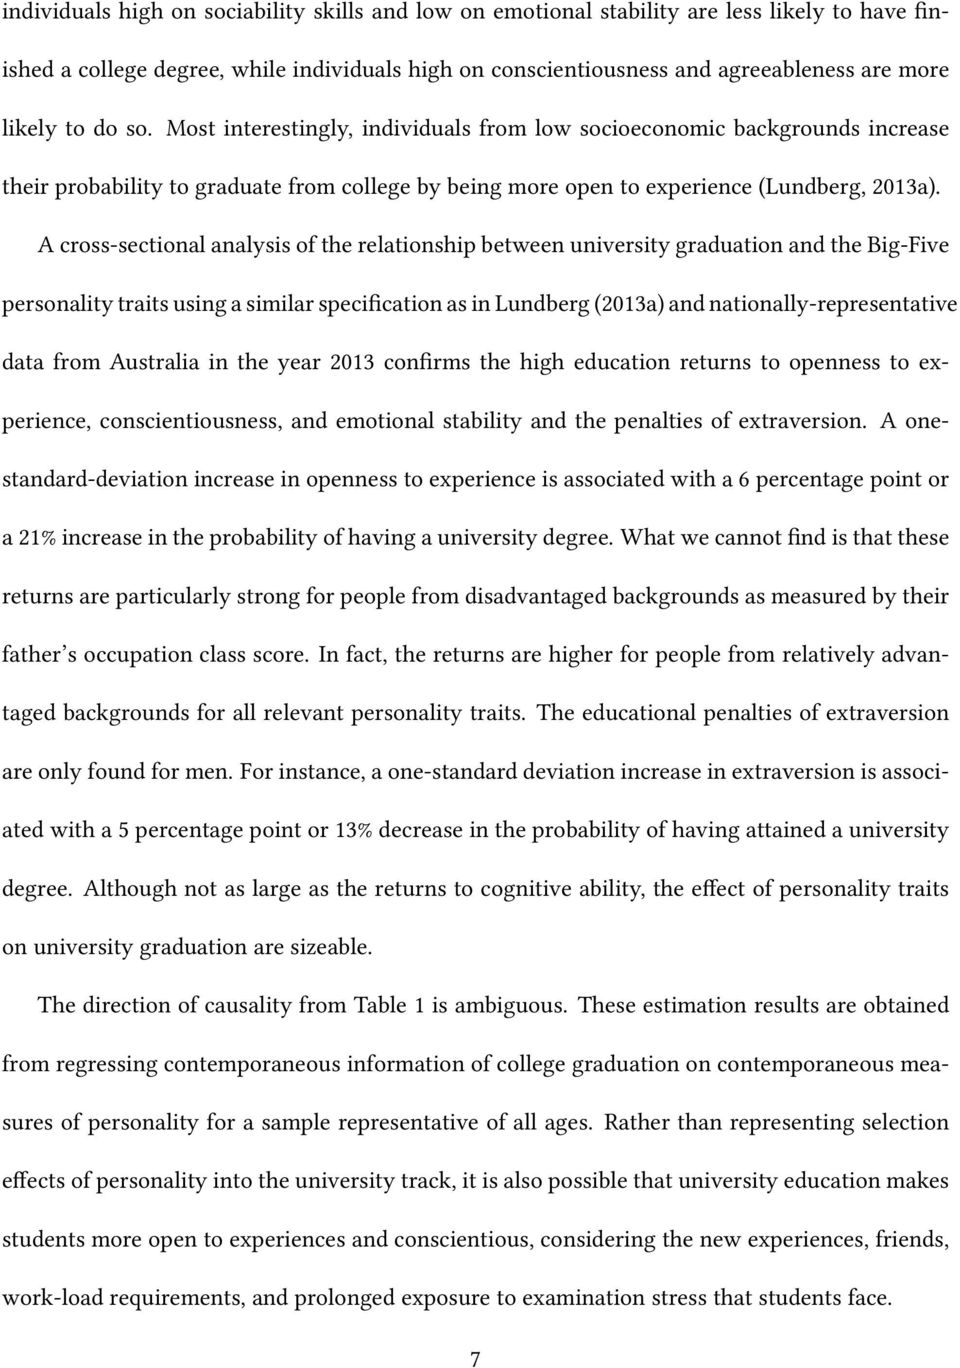 A cross-sectional analysis of the relationship between university graduation and the Big-Five personality traits using a similar specification as in Lundberg (2013a) and nationally-representative